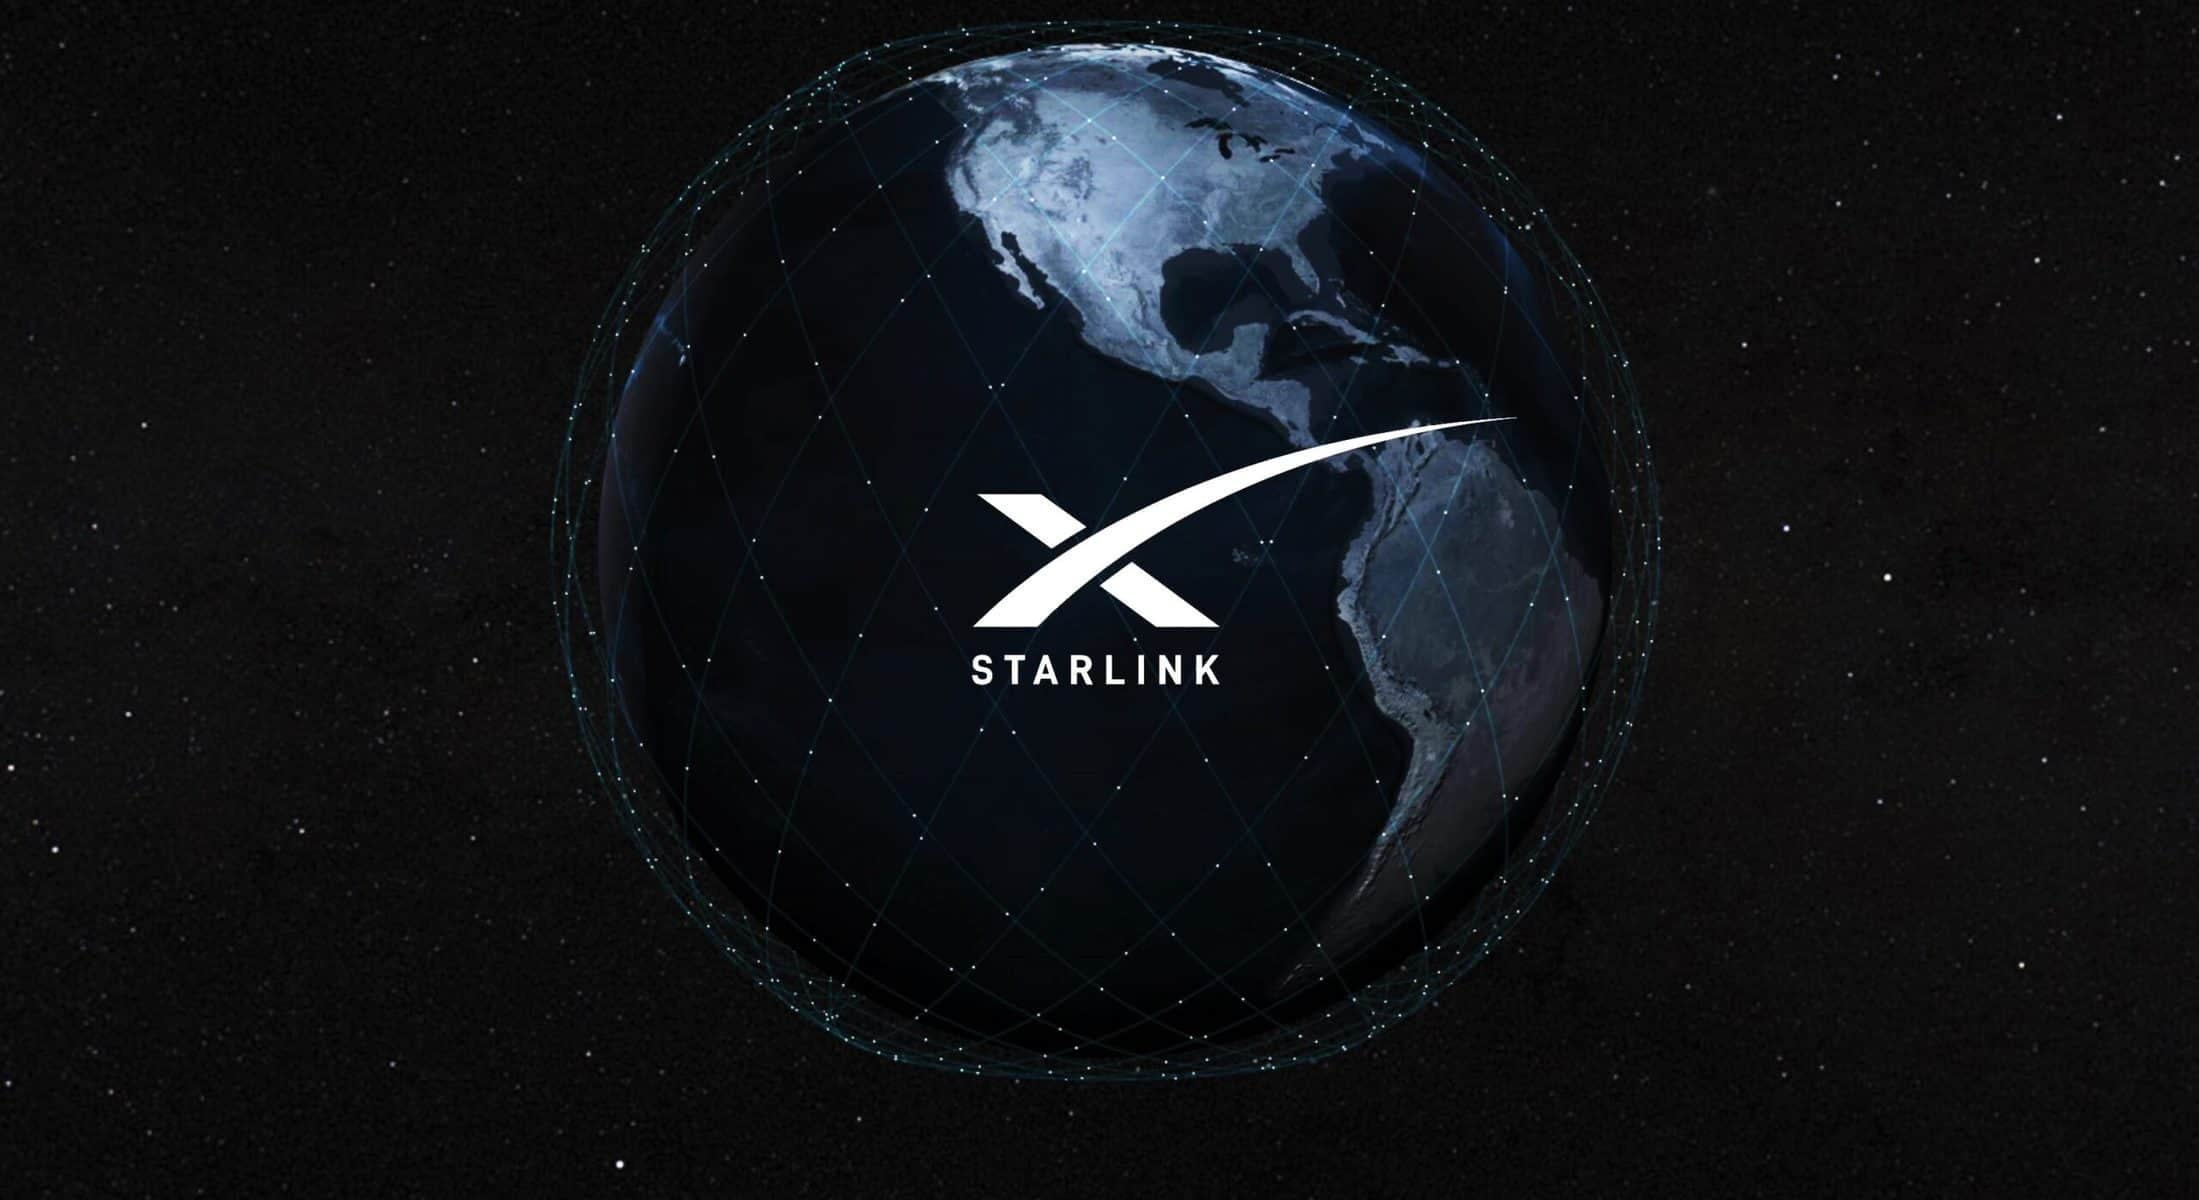 Starlink: SpaceX's satellite internet access offer is available in France